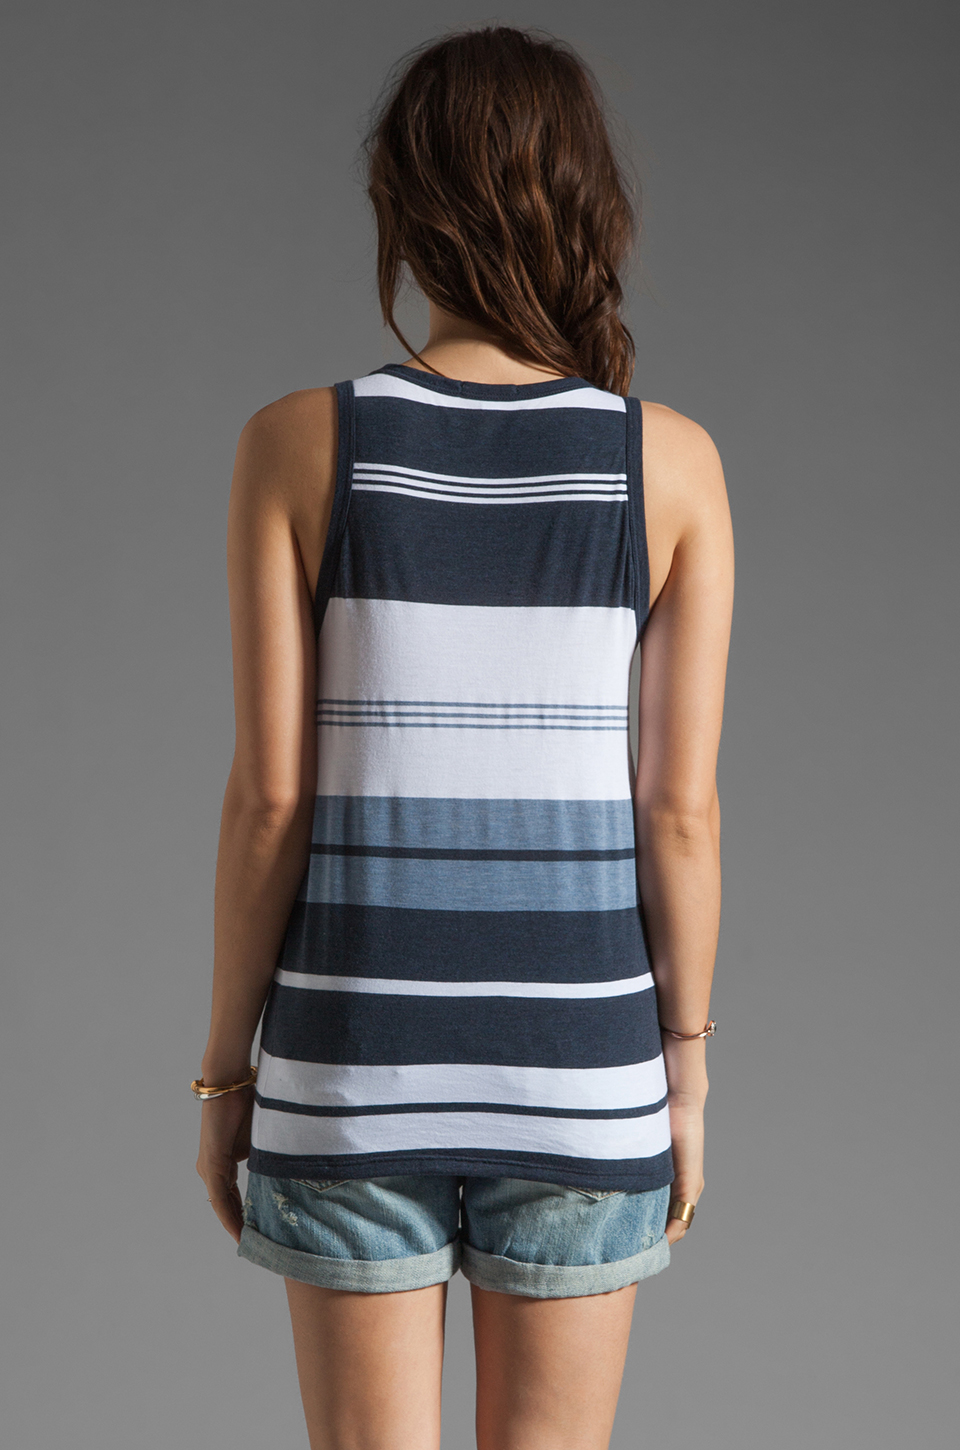 James Perse Pacific Stripe Boxy Tank in Navy/White